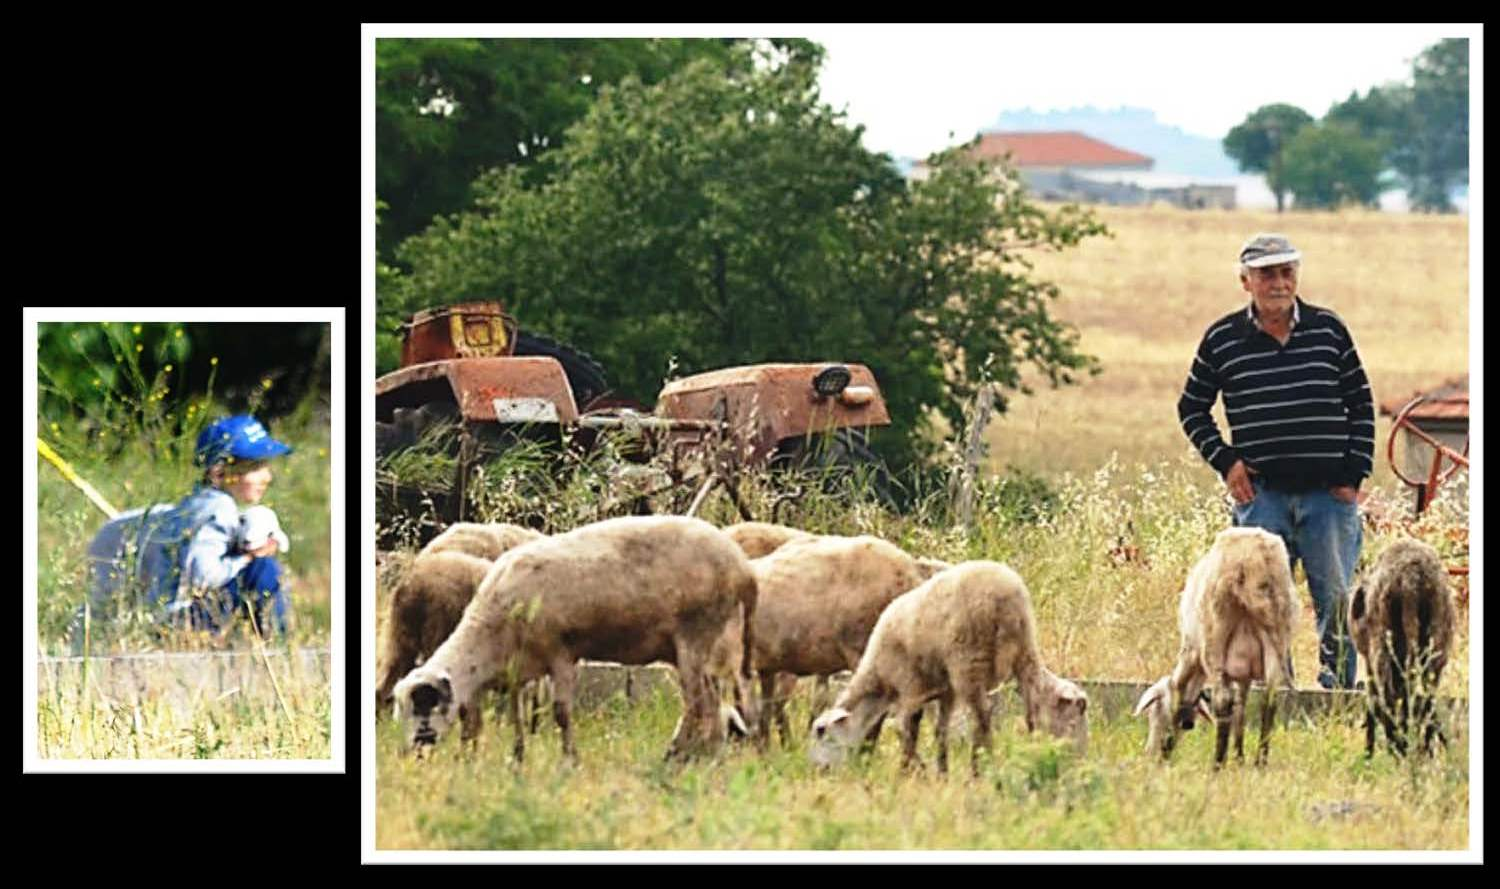 Shepherd and his grandson, each uniquely caring for their flock in a small village in Thessaly, Greece.